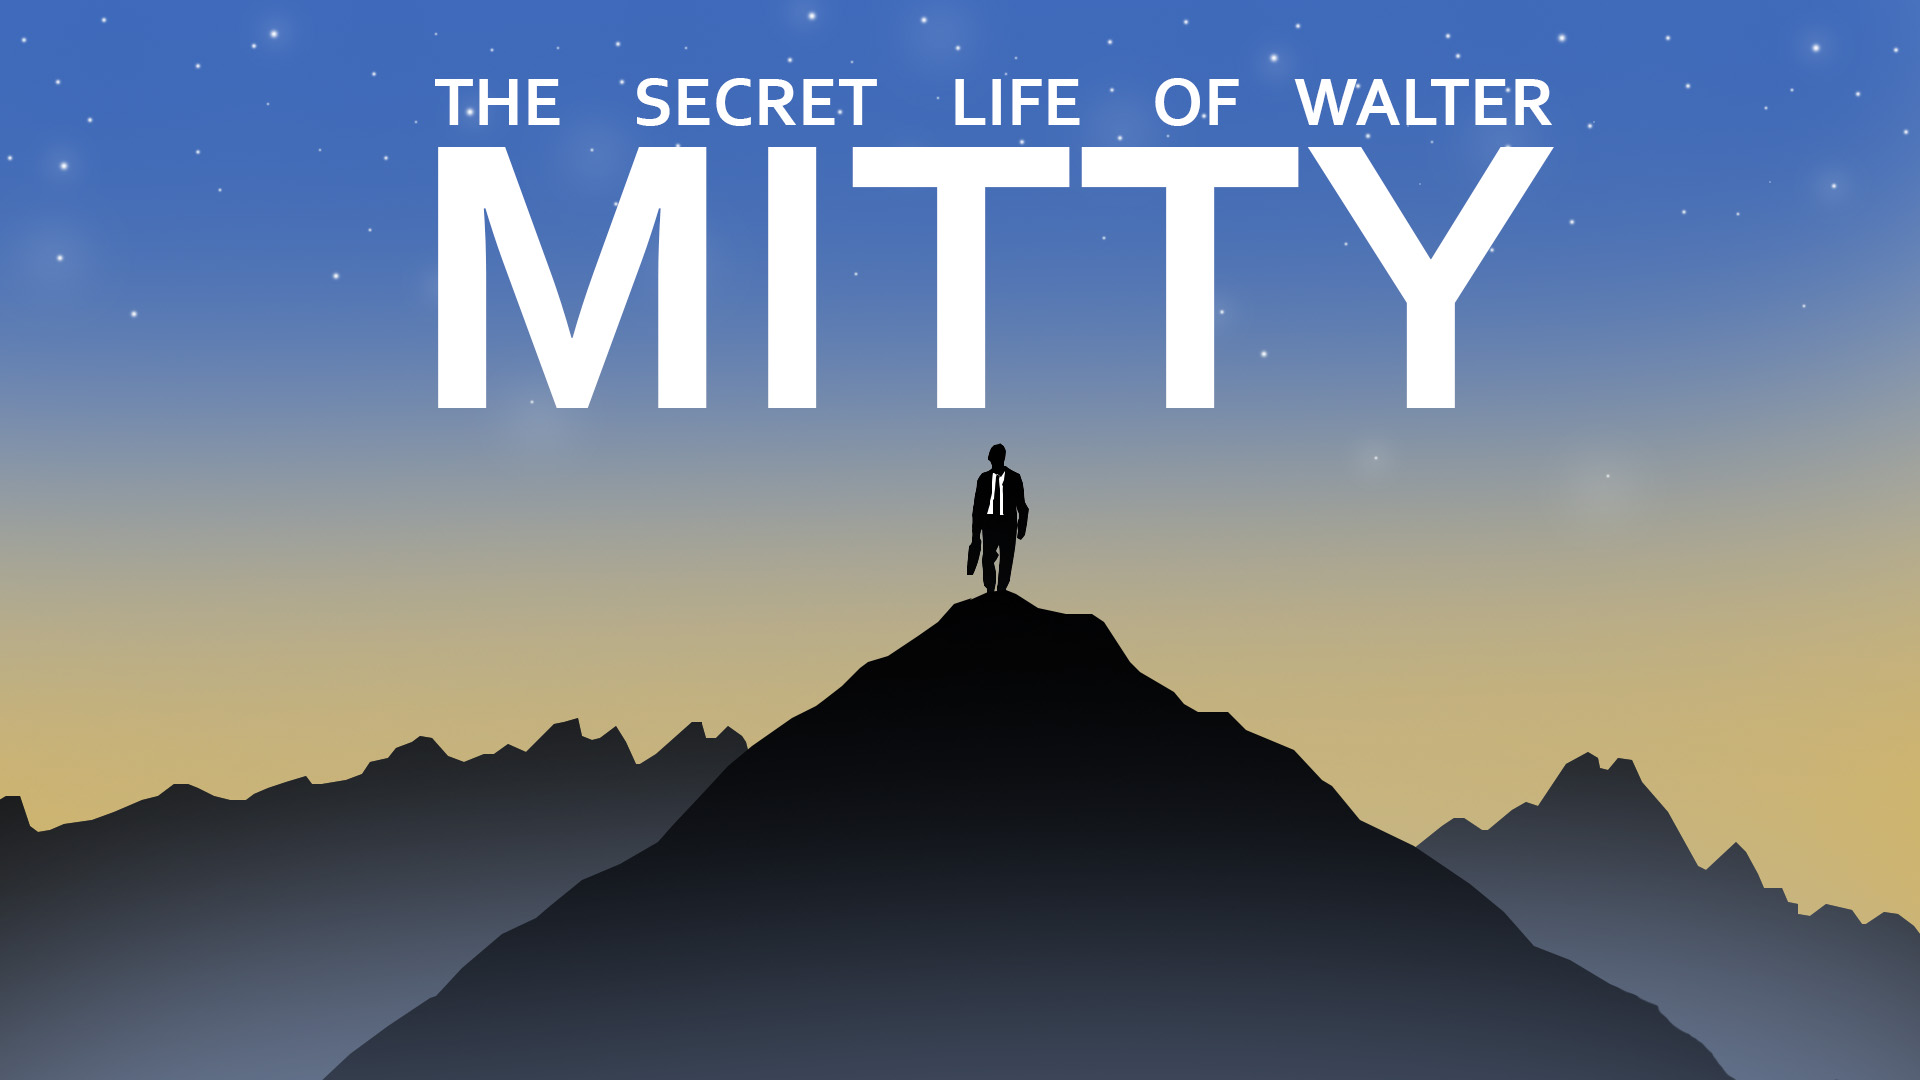 Secret Life Of Walter Mitty Cover Art Title By Senseifrancis On